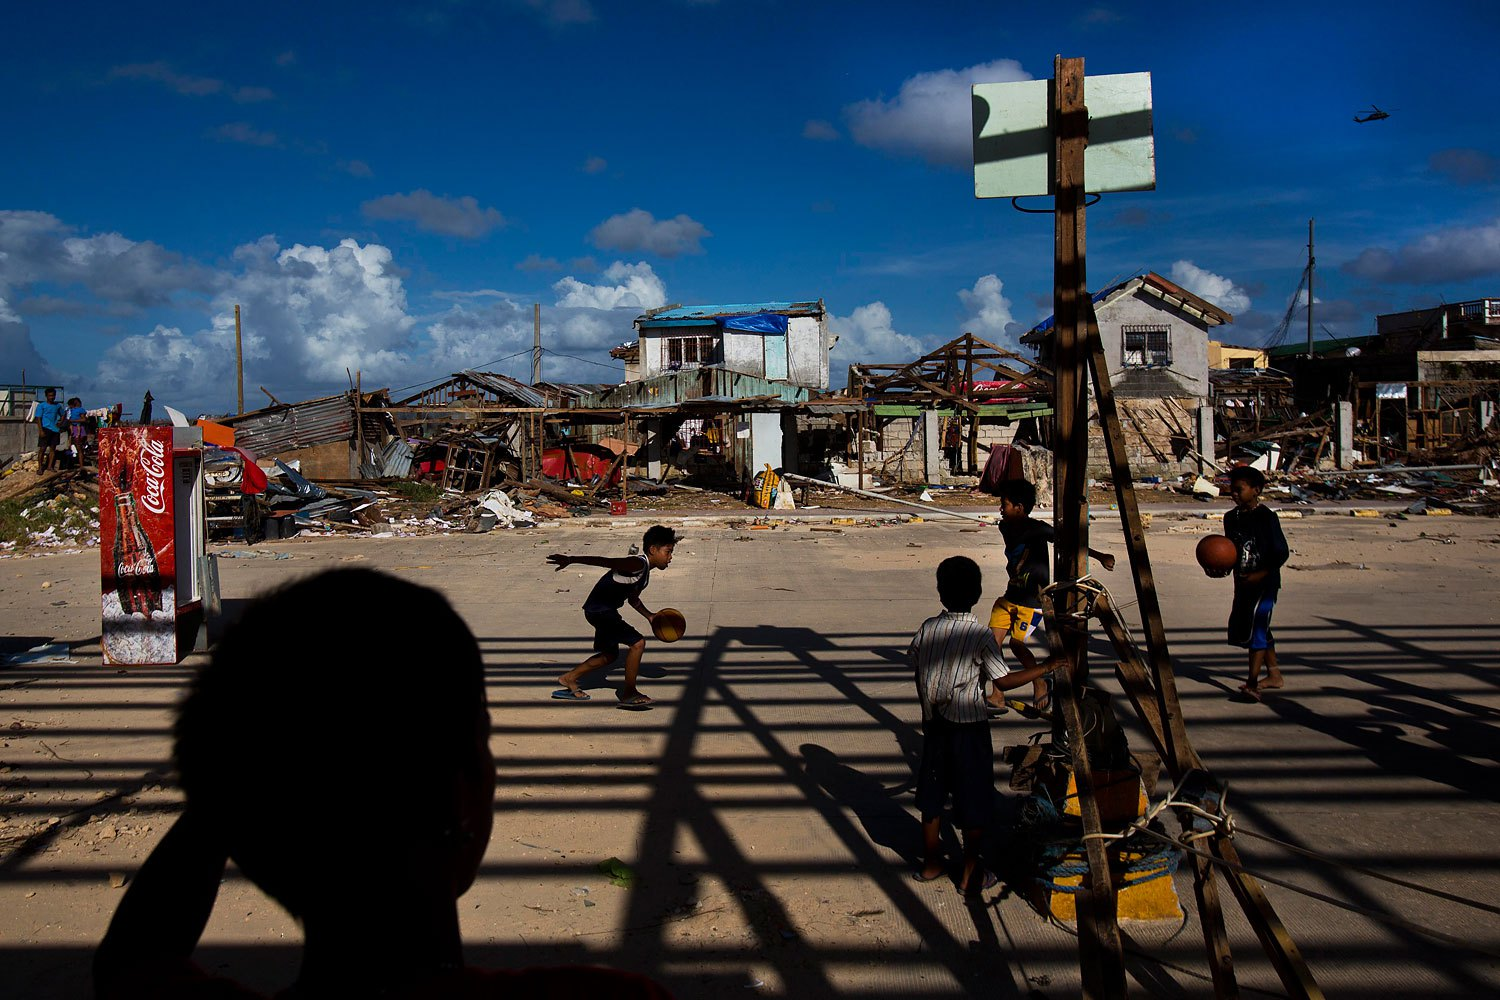 Typhoon Haiyan survivors play basketball at the destroyed port in the town of Guiuan, Philippines on November 15, 2013.